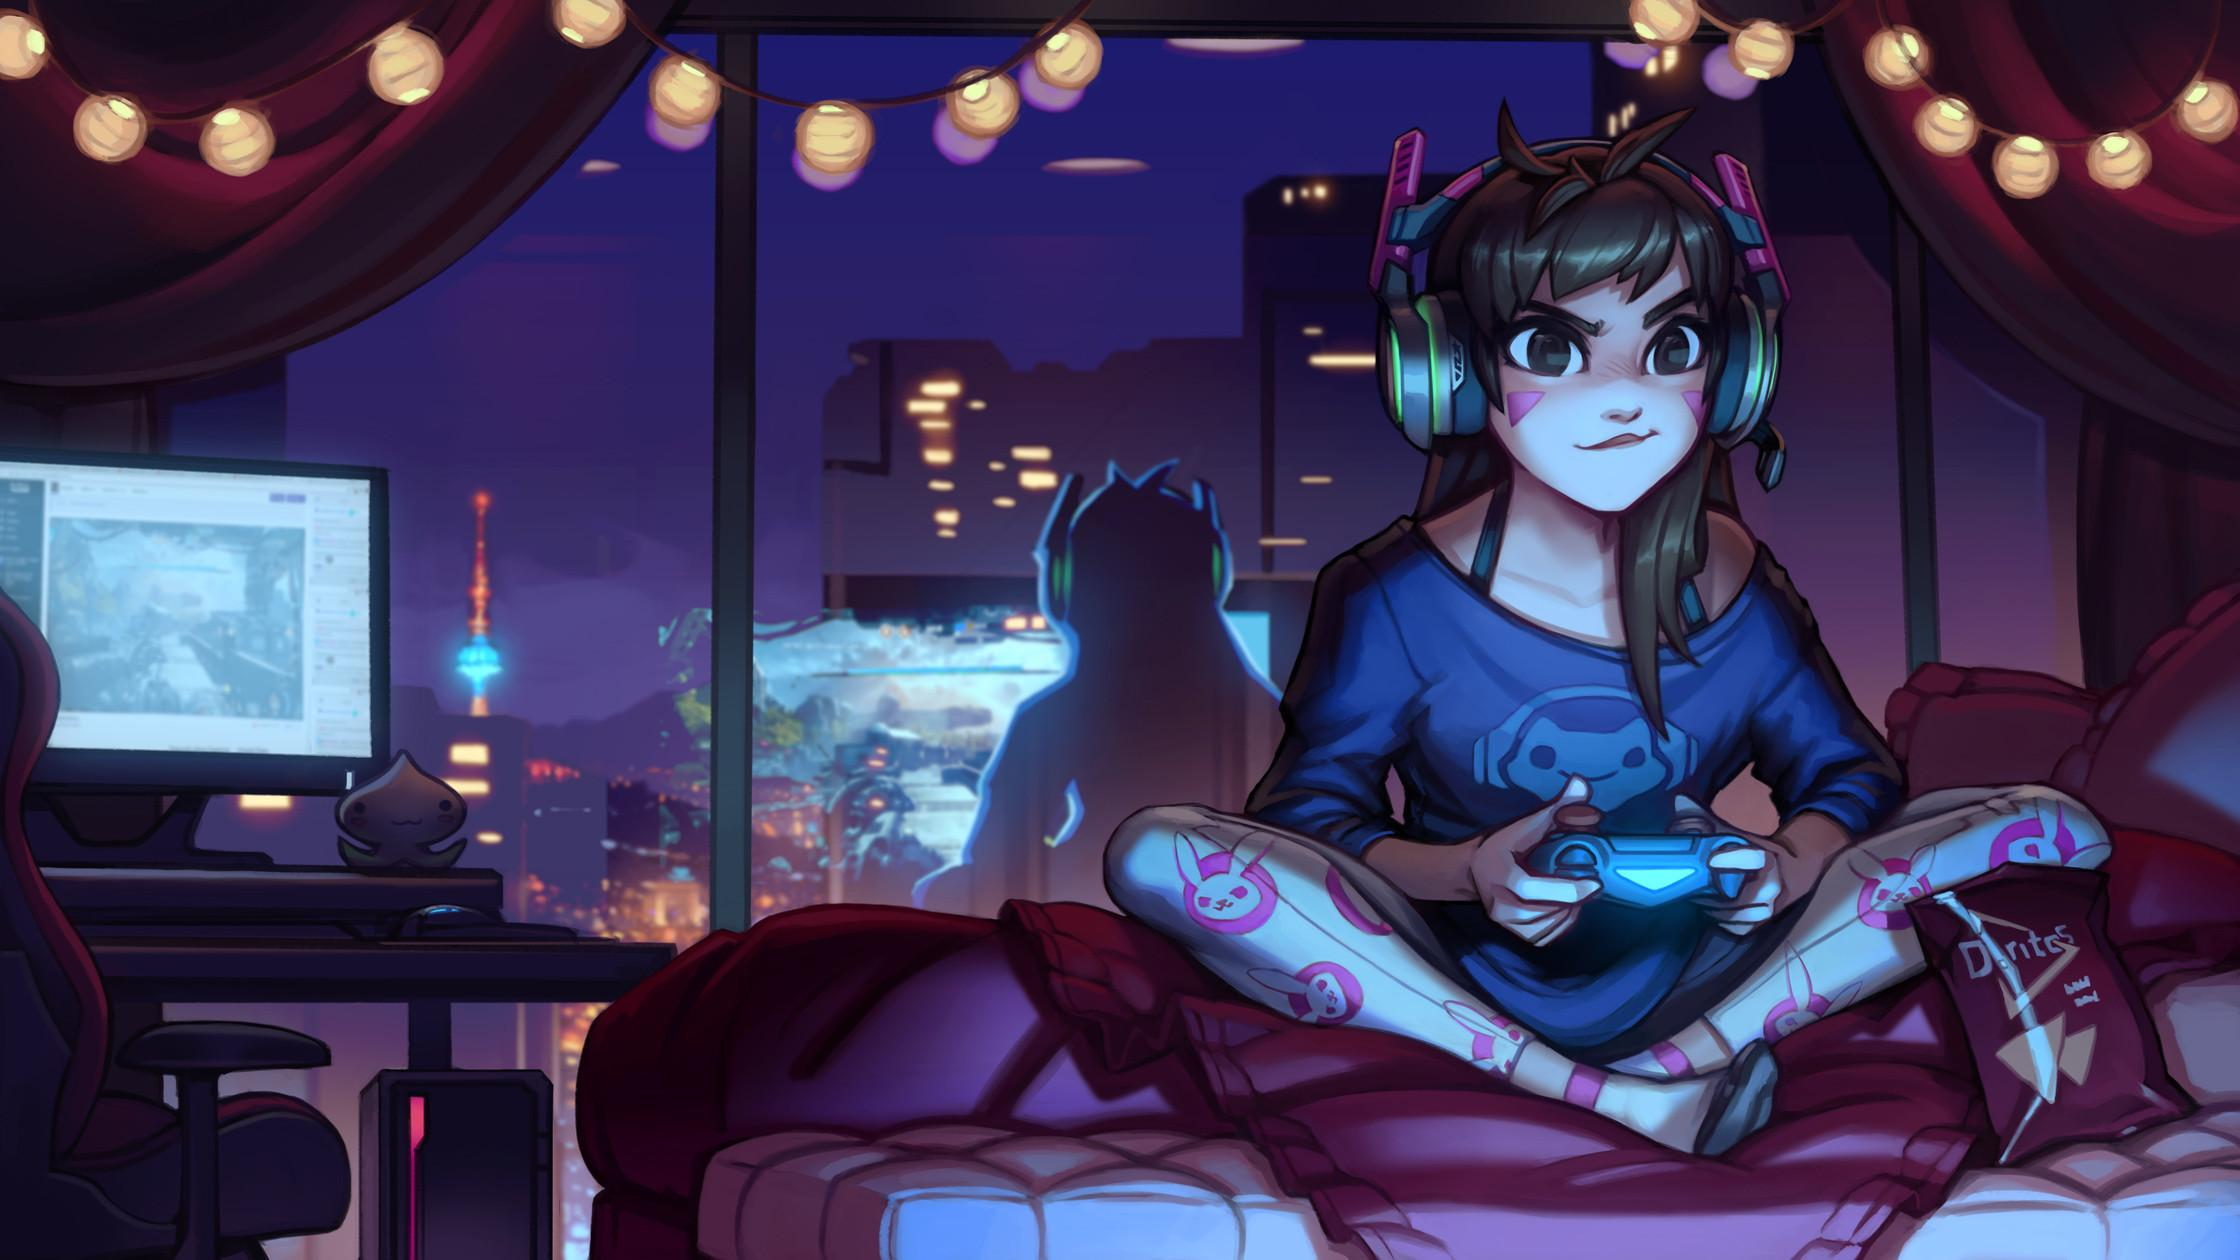 Female Gamer Wallpapers - Top Free ...